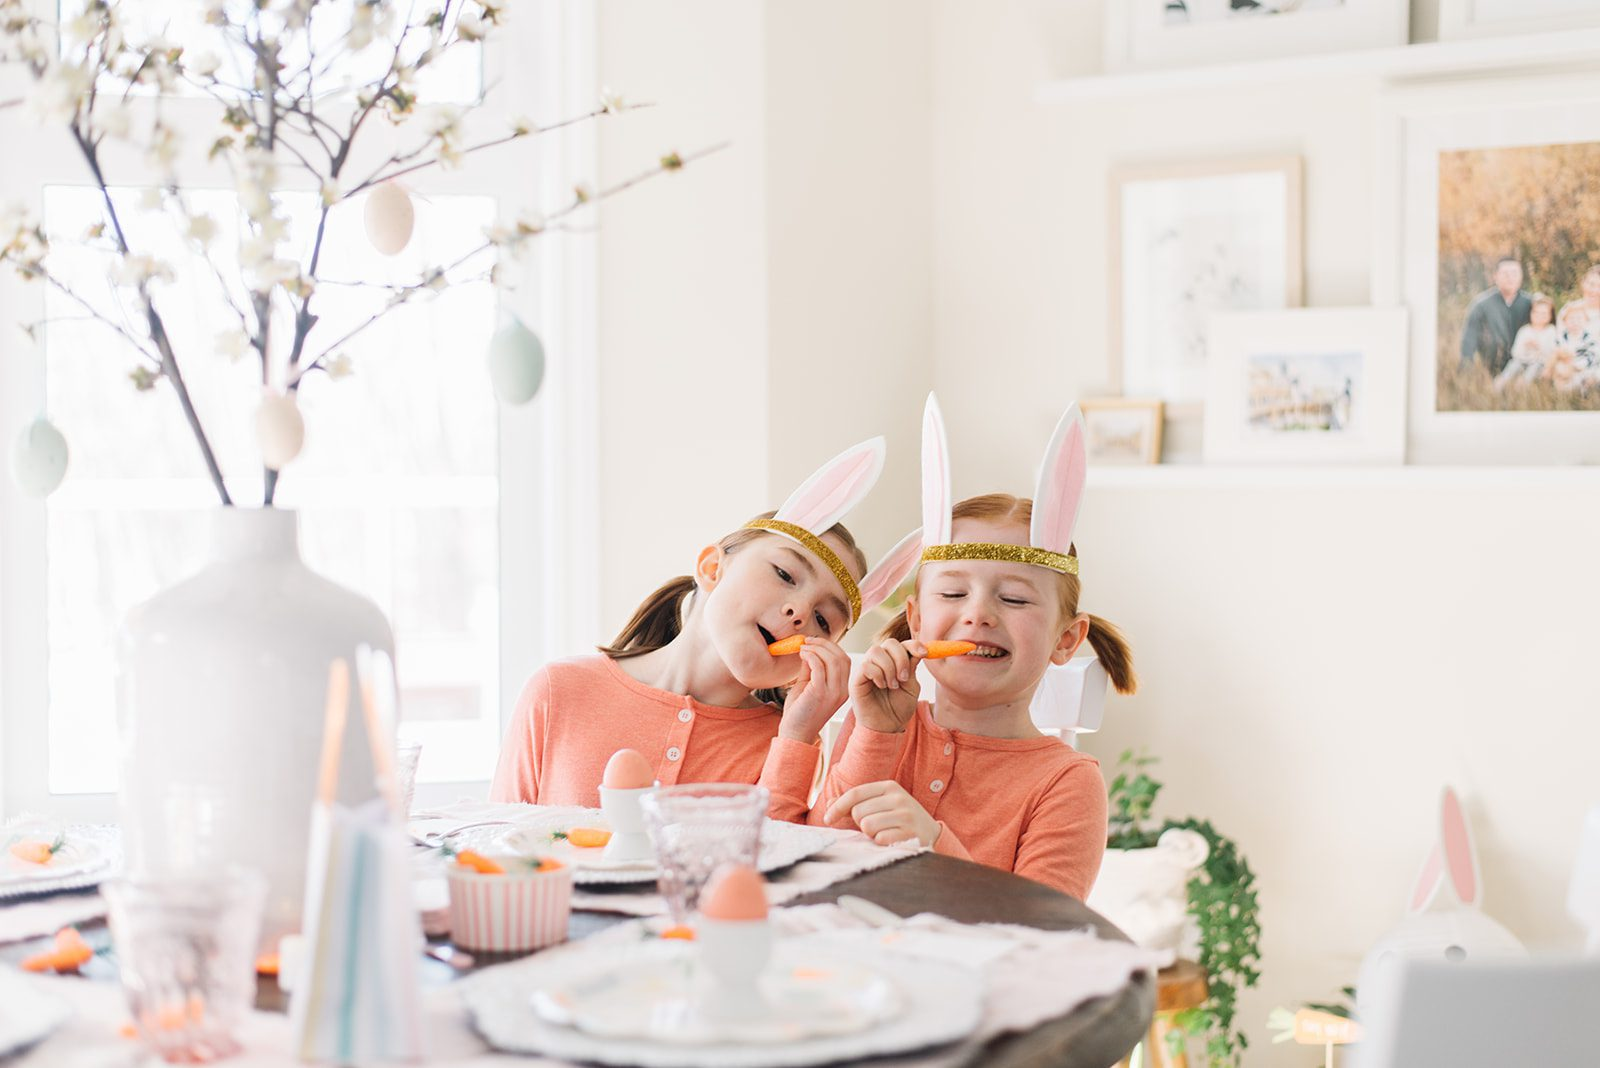 2 little girls with bunny ears sitting at a table set up Easter pretending to eat carrots